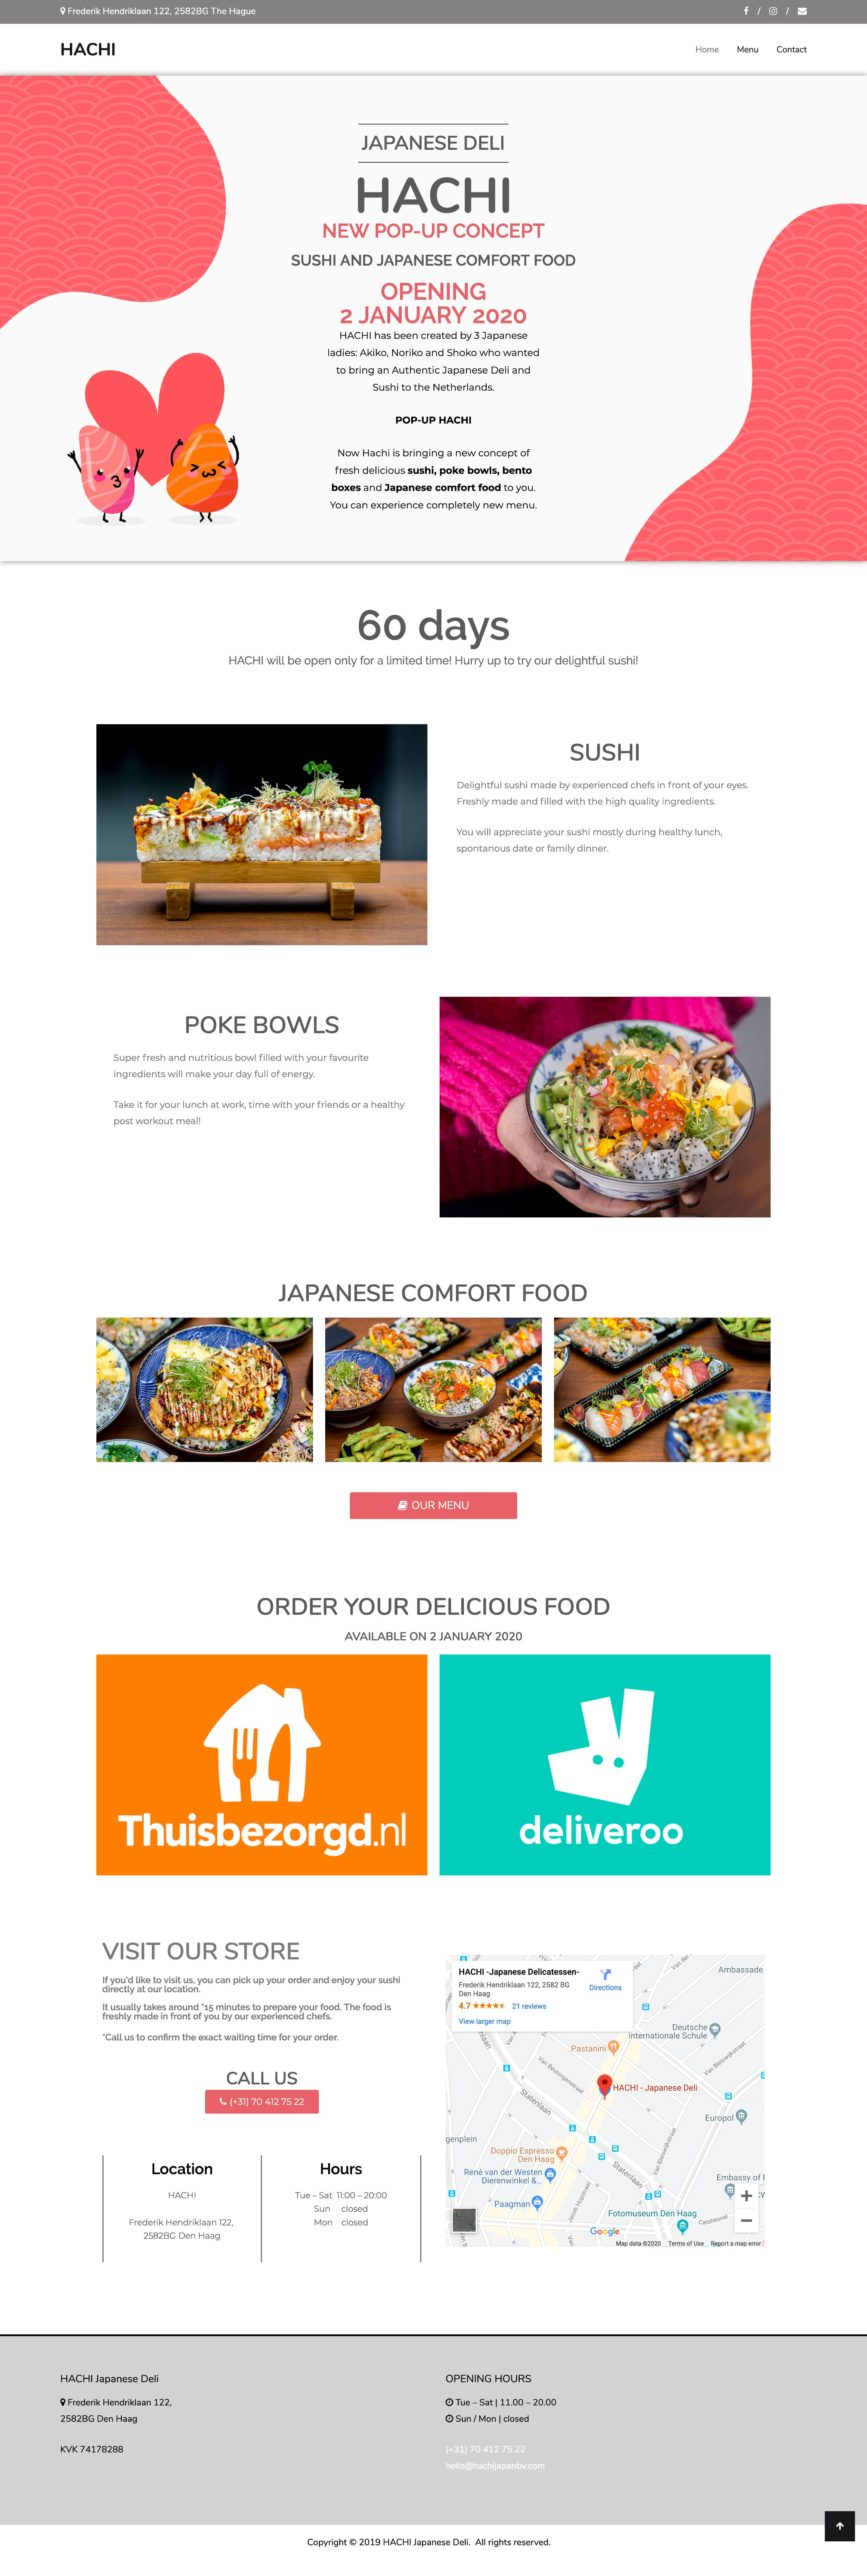 Project: Hachi Restaurant | Hachi Website